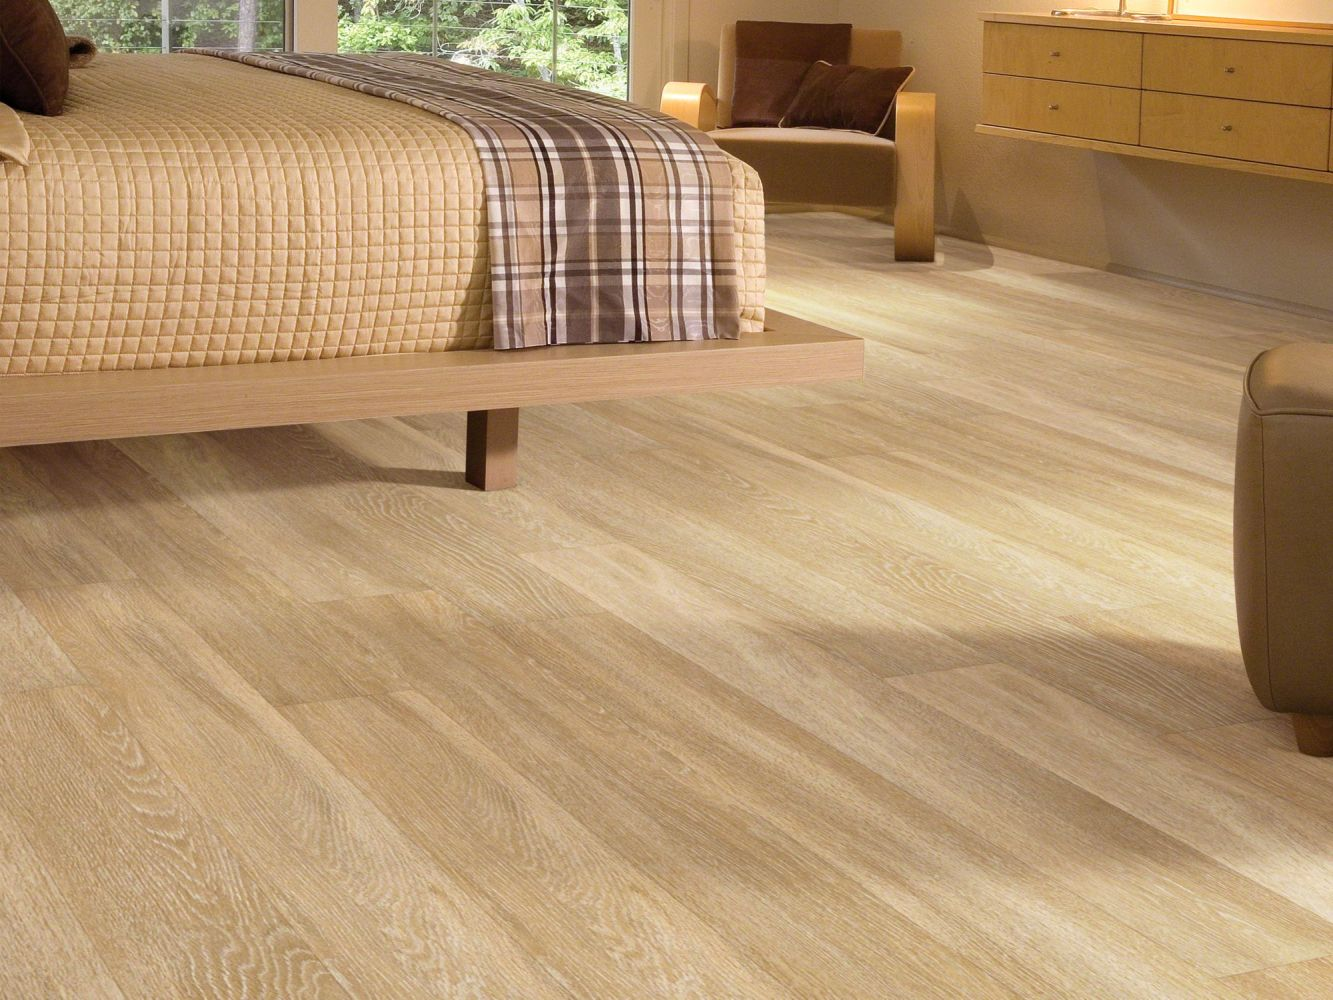 Shaw Floors Vinyl Residential Columbia 12 River 00344_0369V